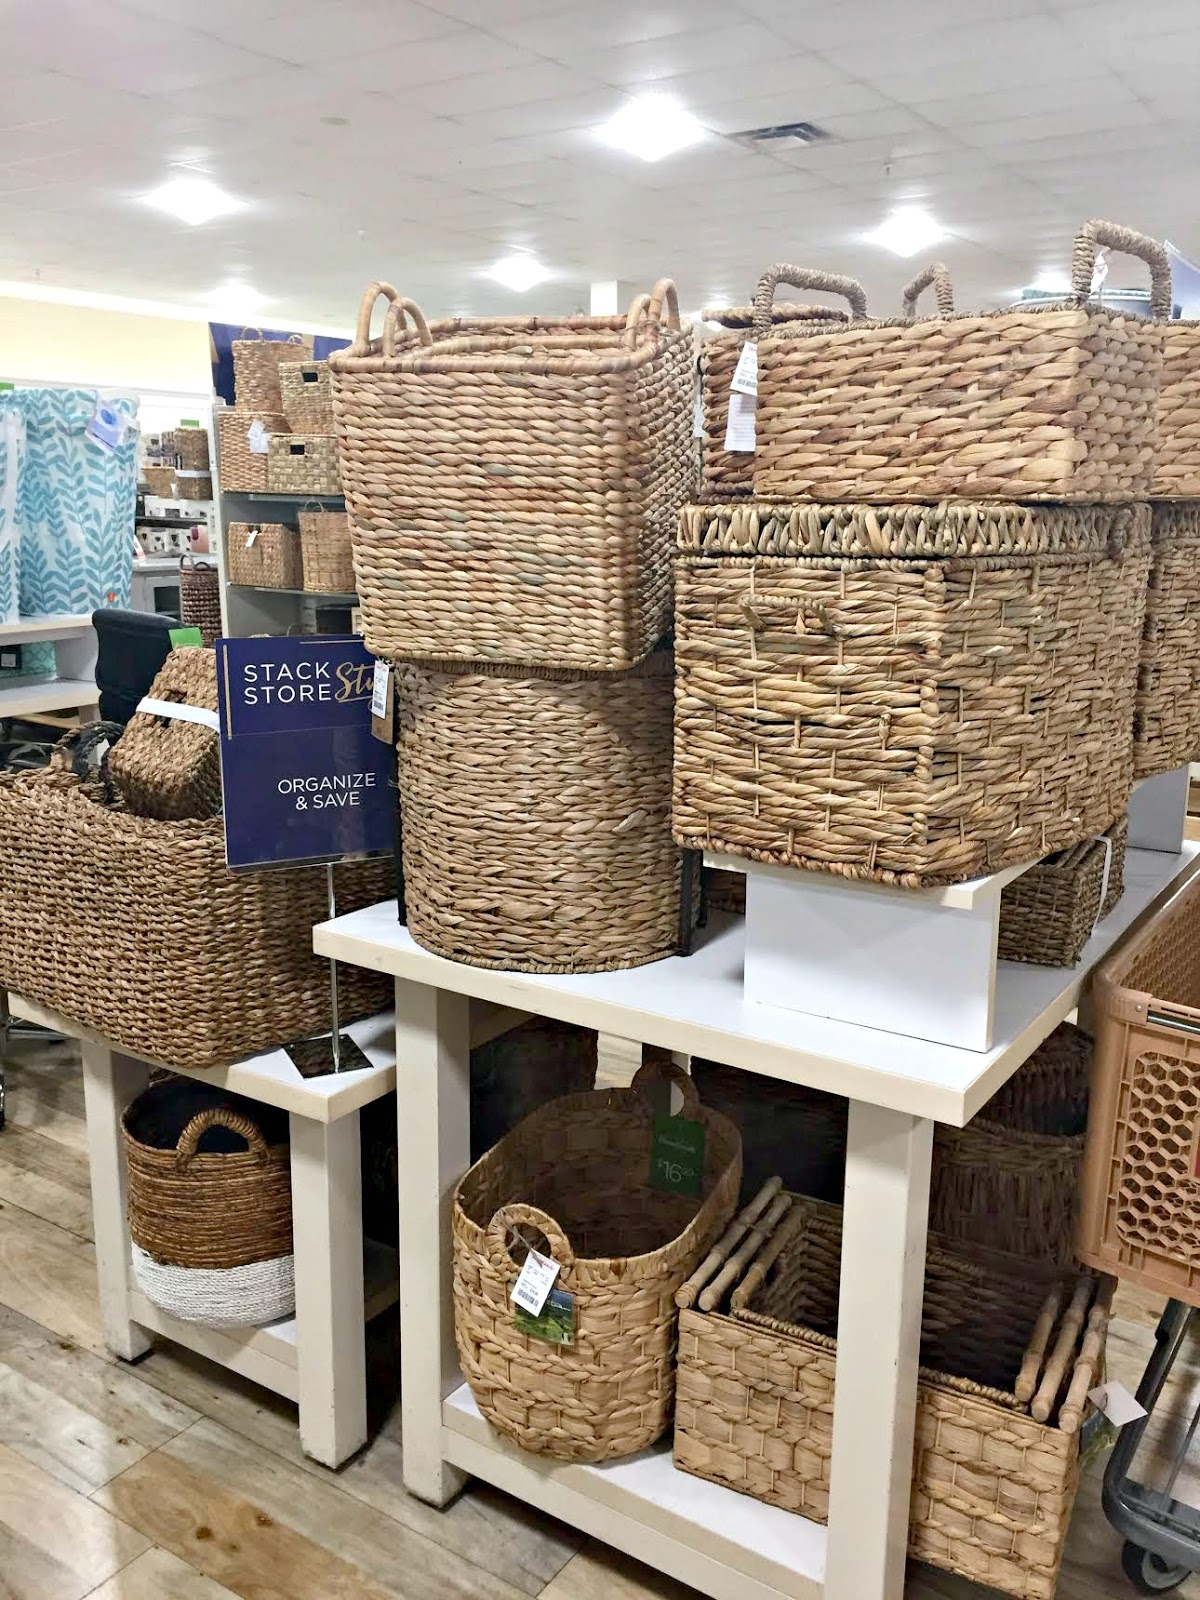 The five best items to shop at HomeGoods from Thrifty